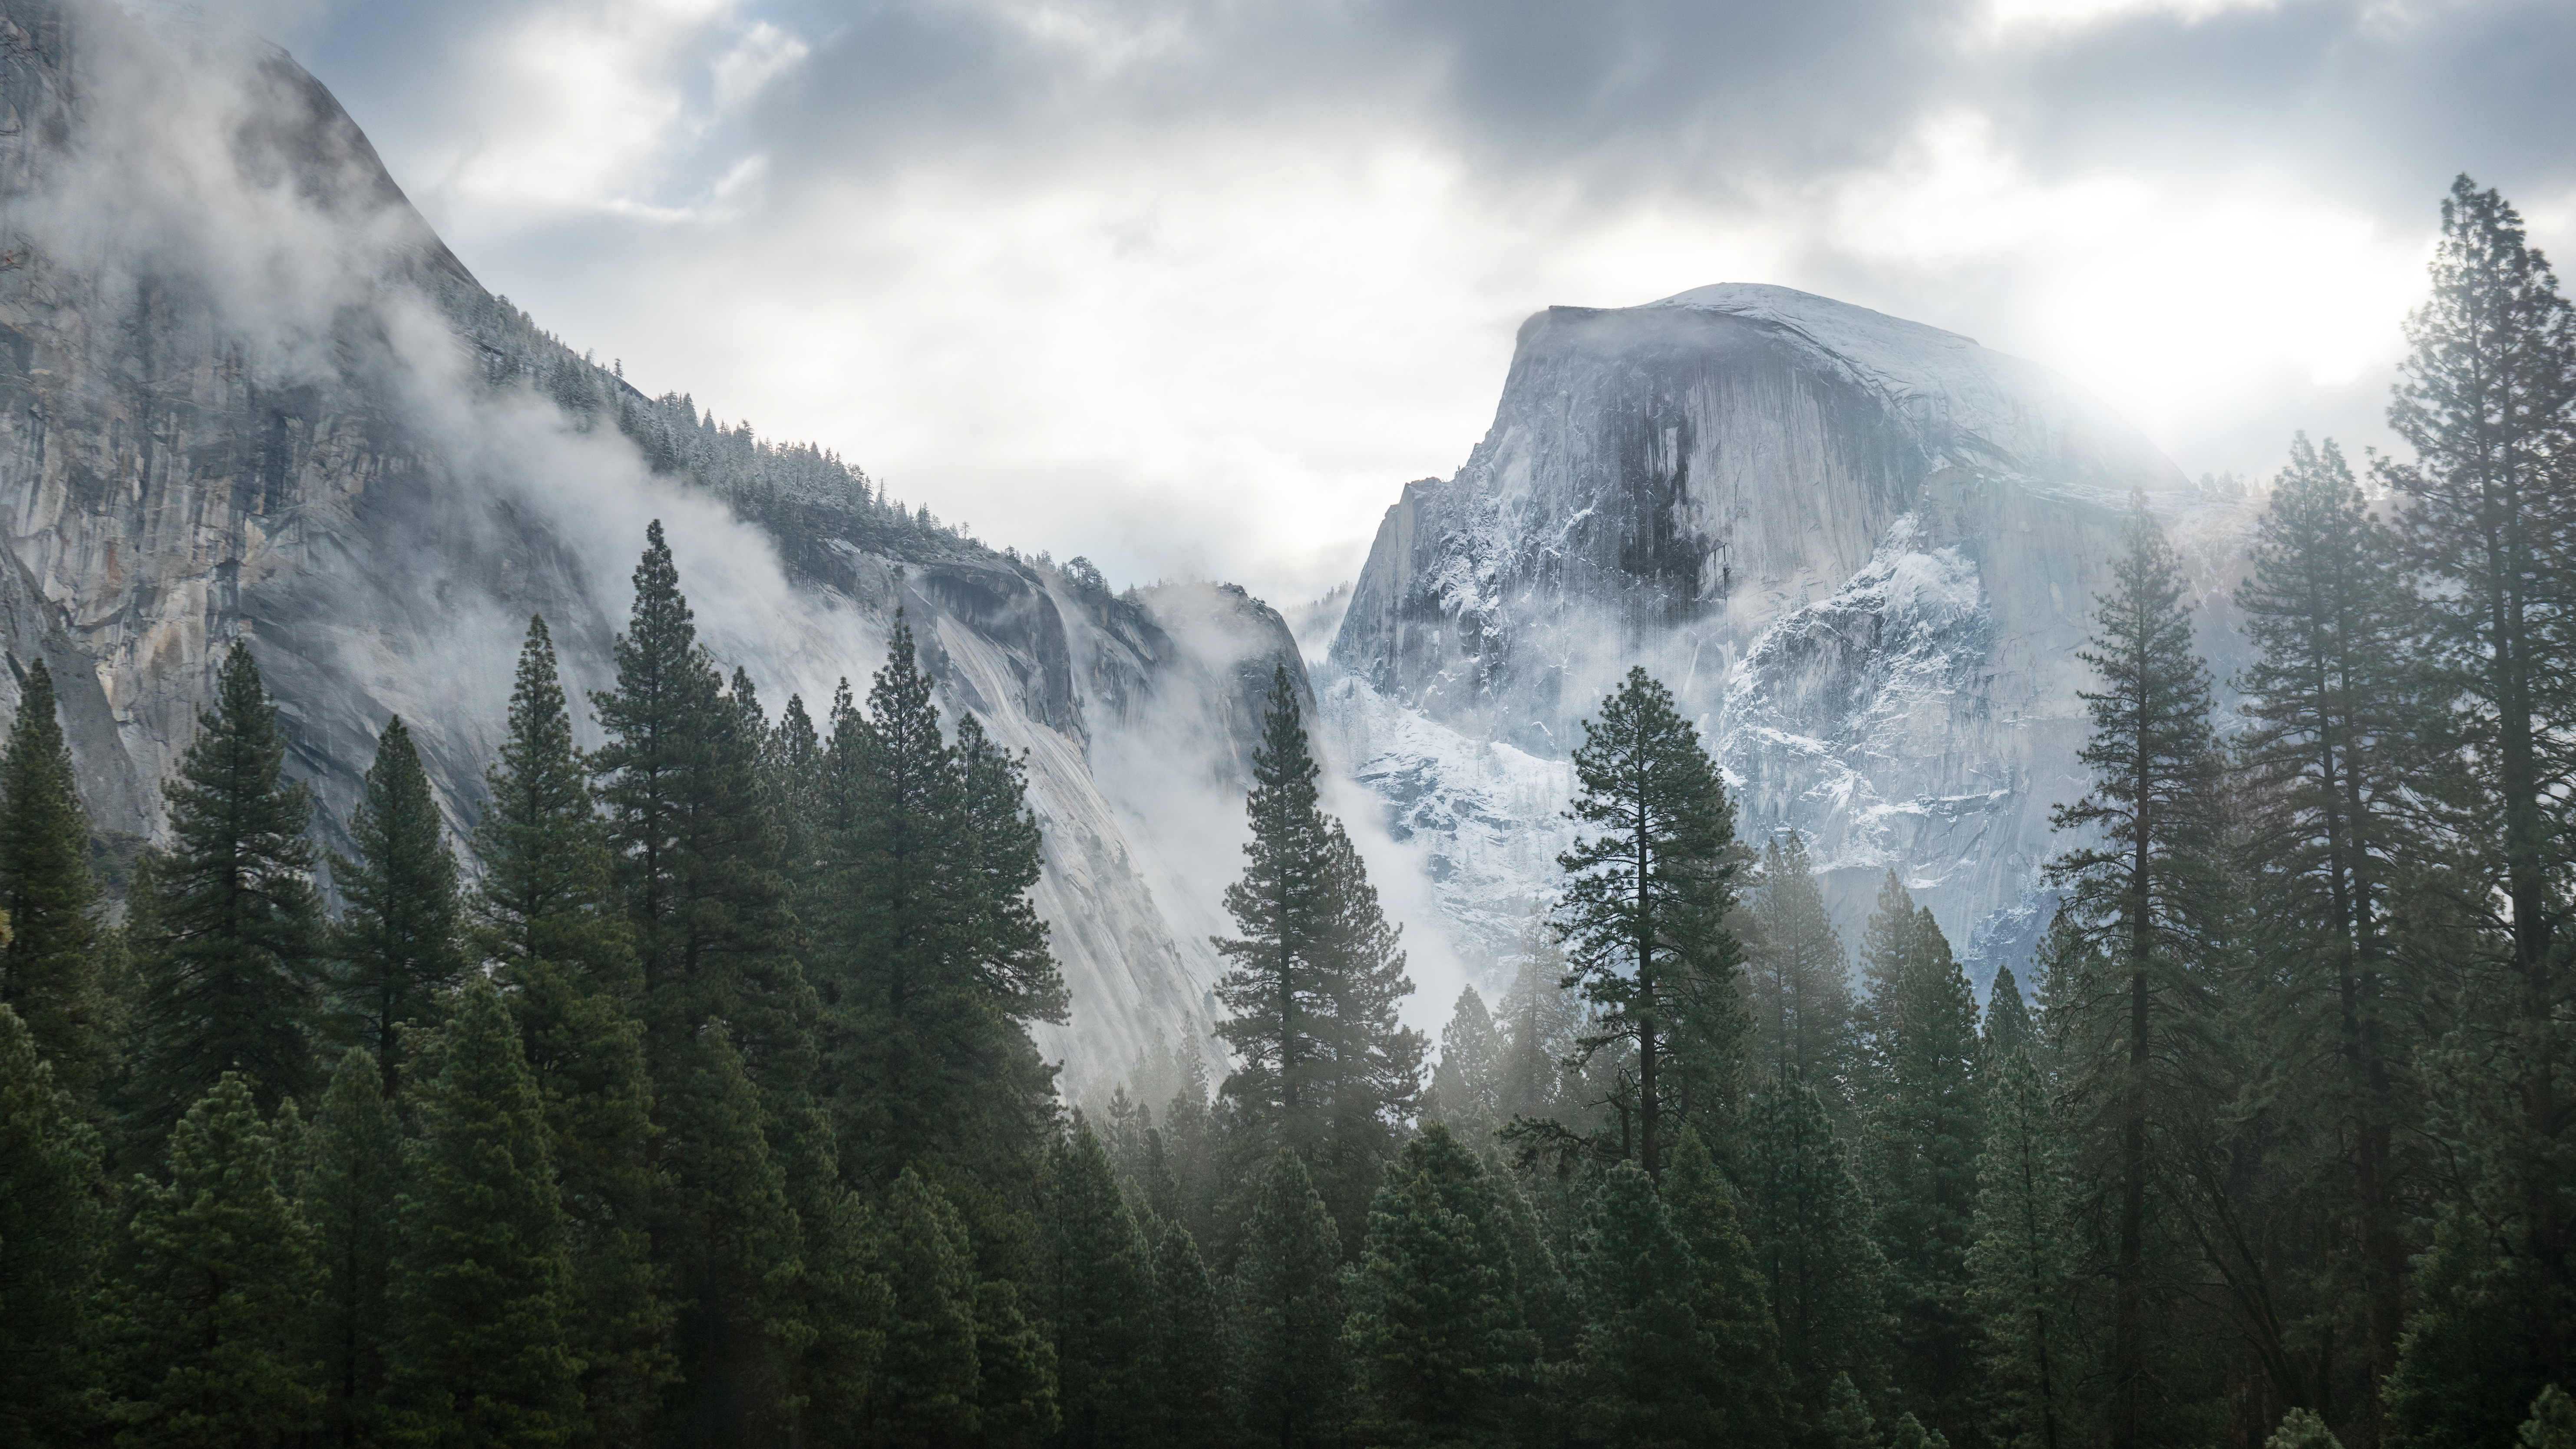 Free Download Download The New Os X Yosemite Wallpapers For